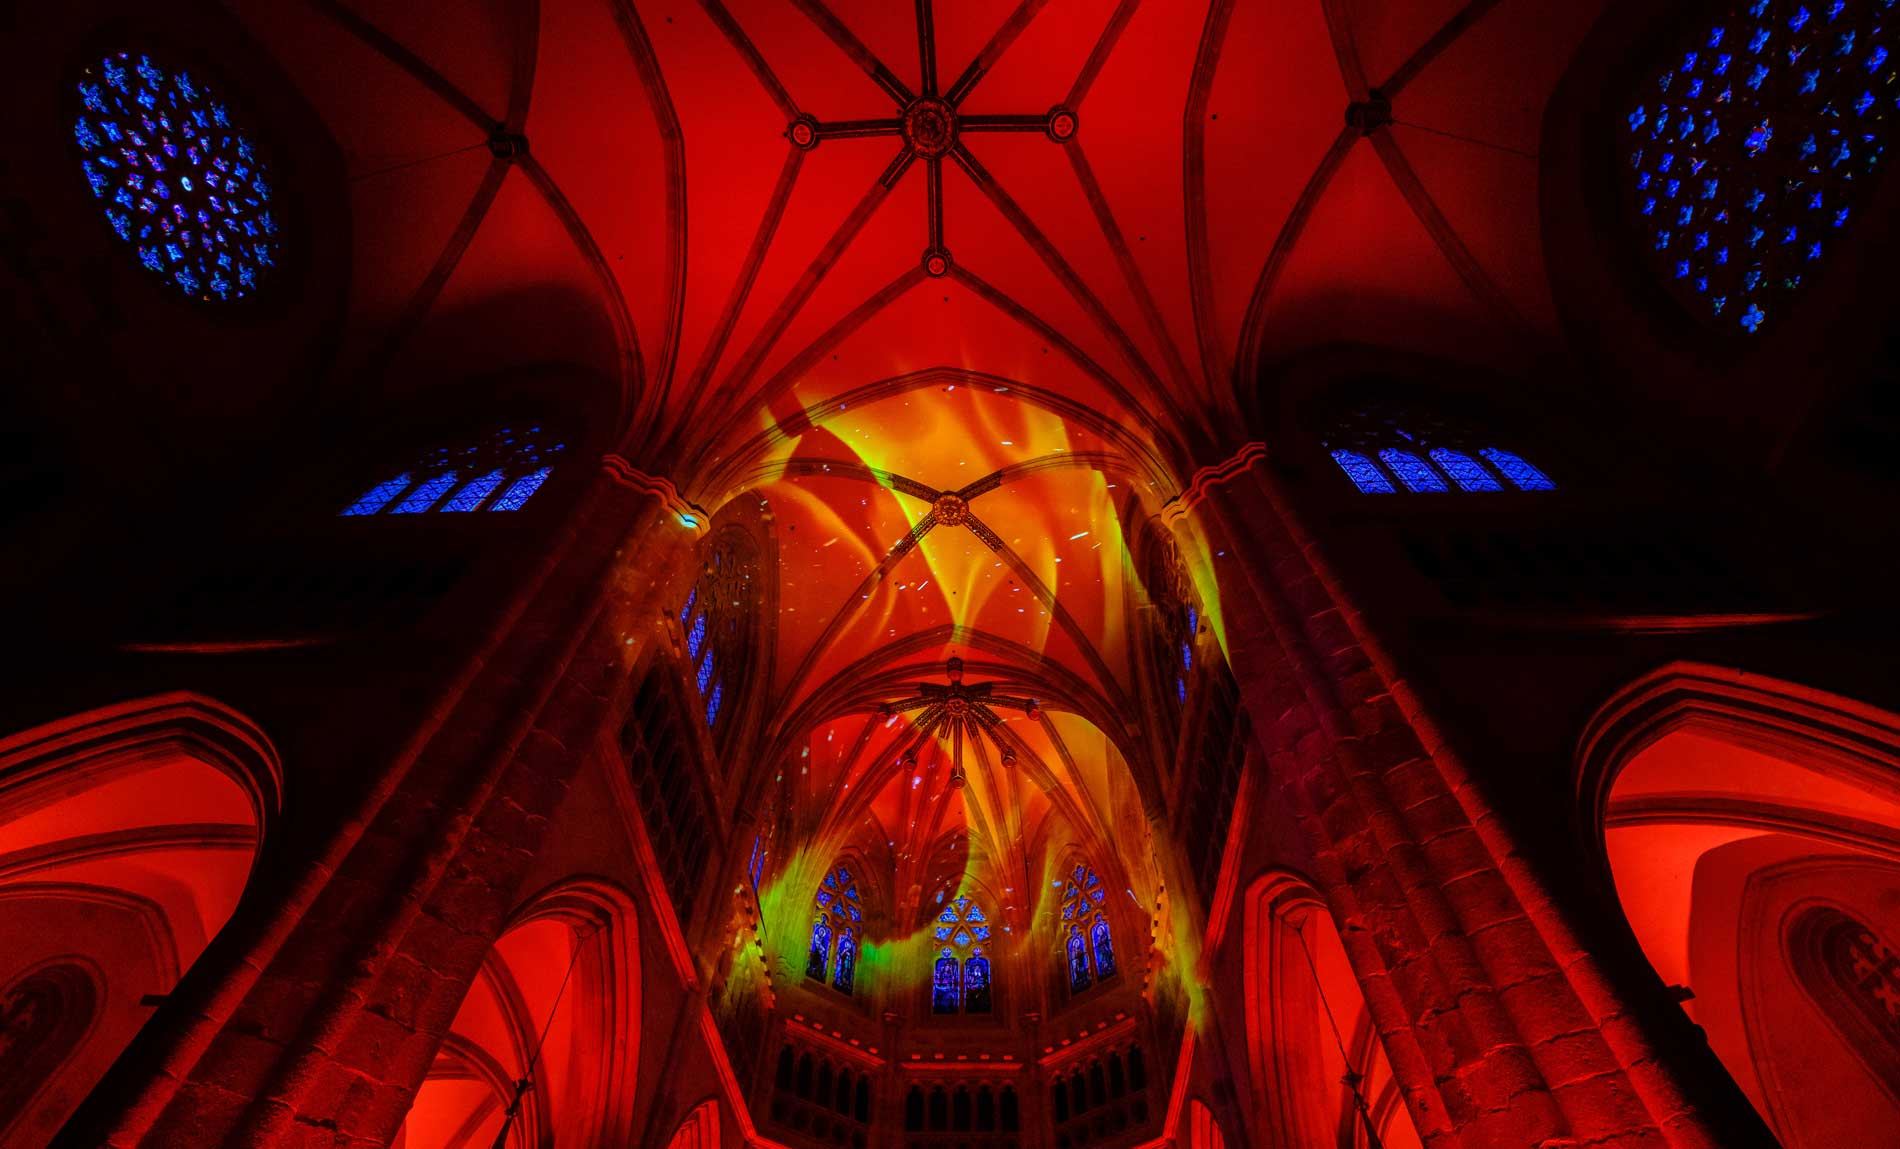 Necsum lightart arte digital Requiem